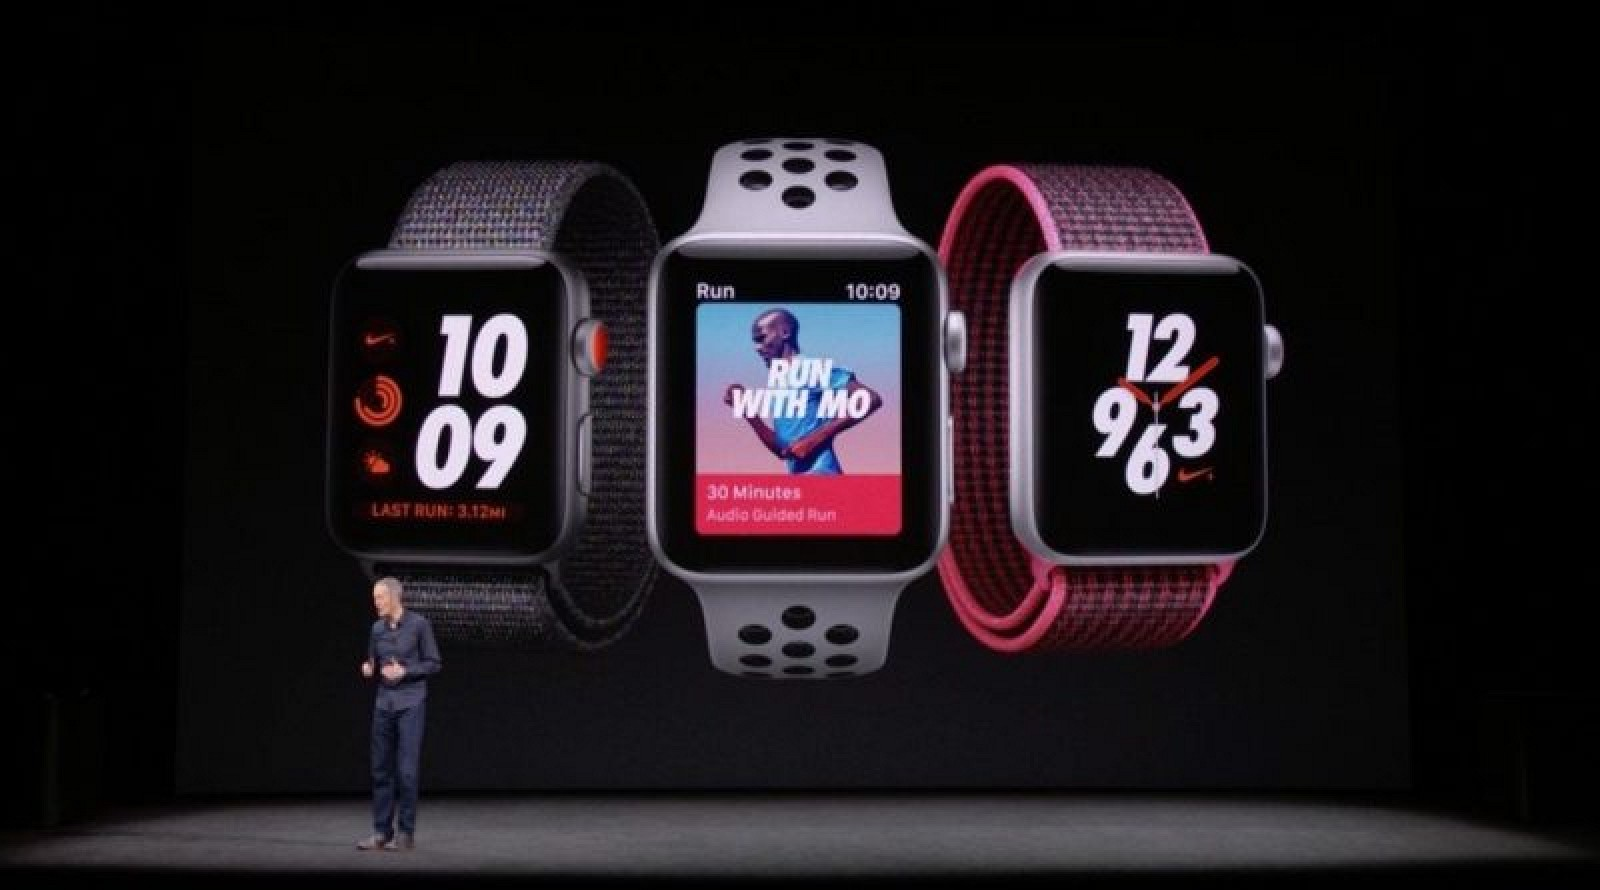 Apple Announces New Watch Bands and Finishes for Apple Watch Series 3Apple Inc - Apple Watch - Cupertino California - Hermès - Nike Inc - Steve Jobs